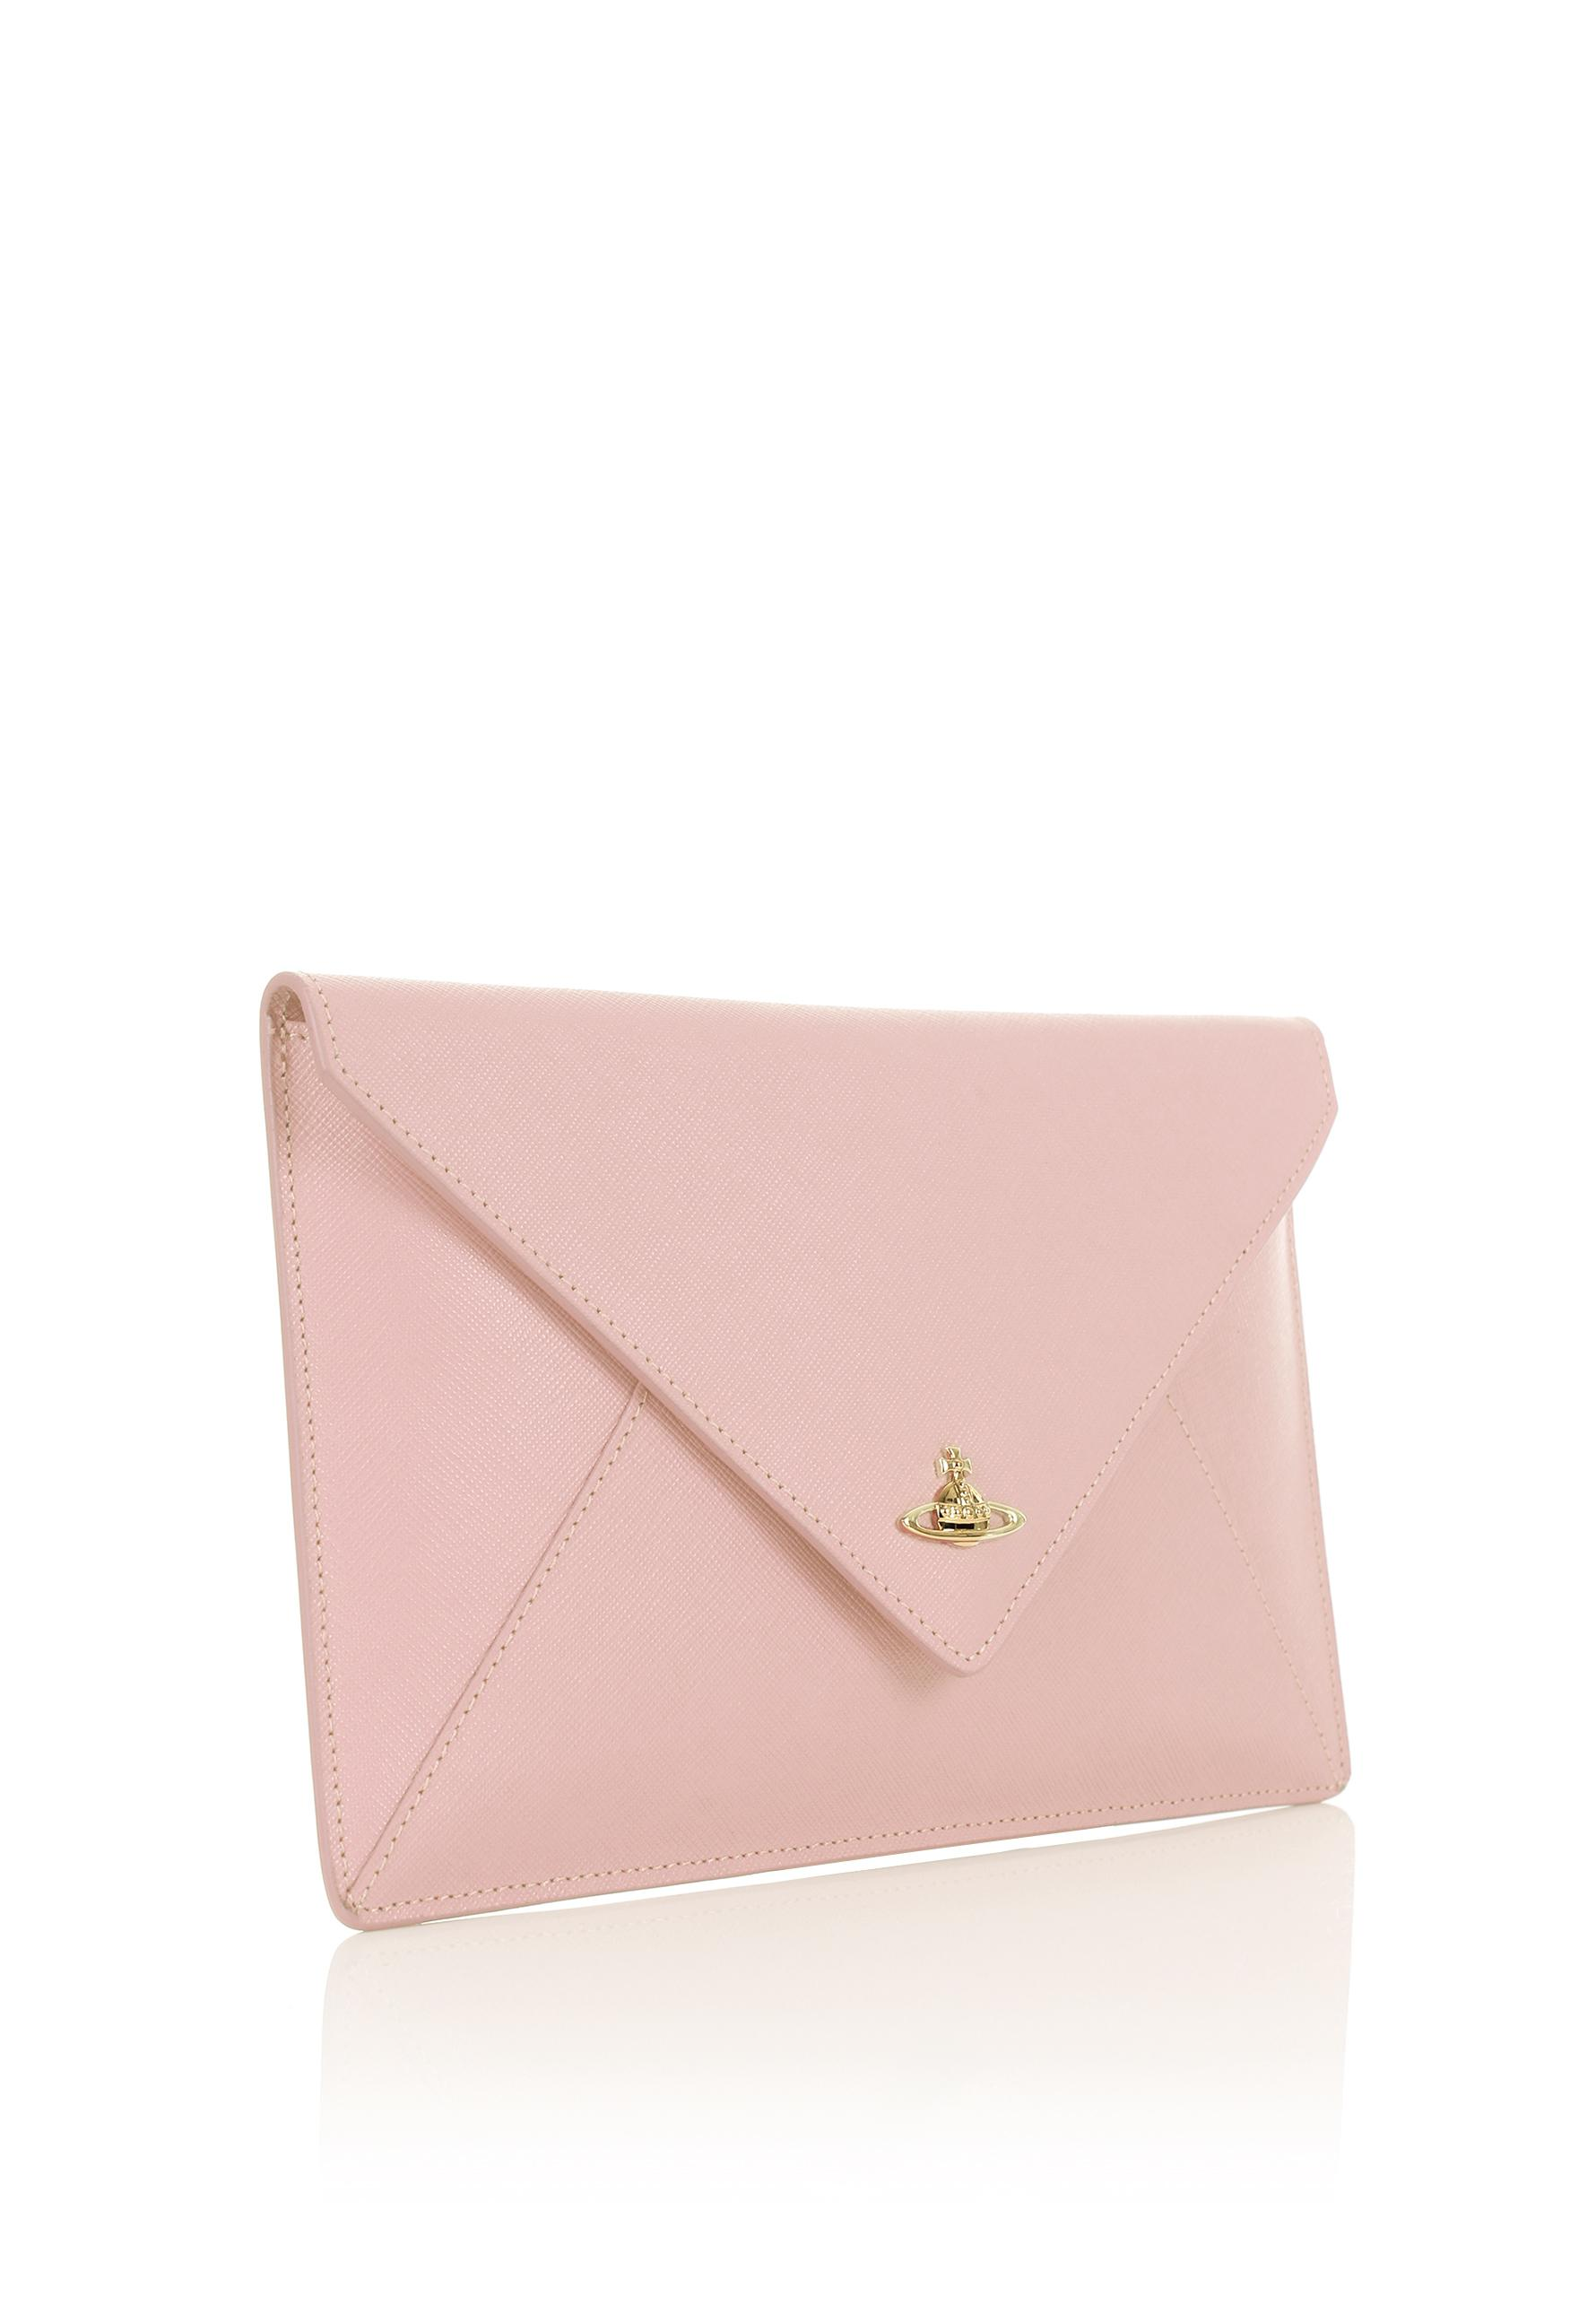 98d4745d5 Lyst - Vivienne Westwood Pouch 7040 Envelope Clutch Pink in Pink